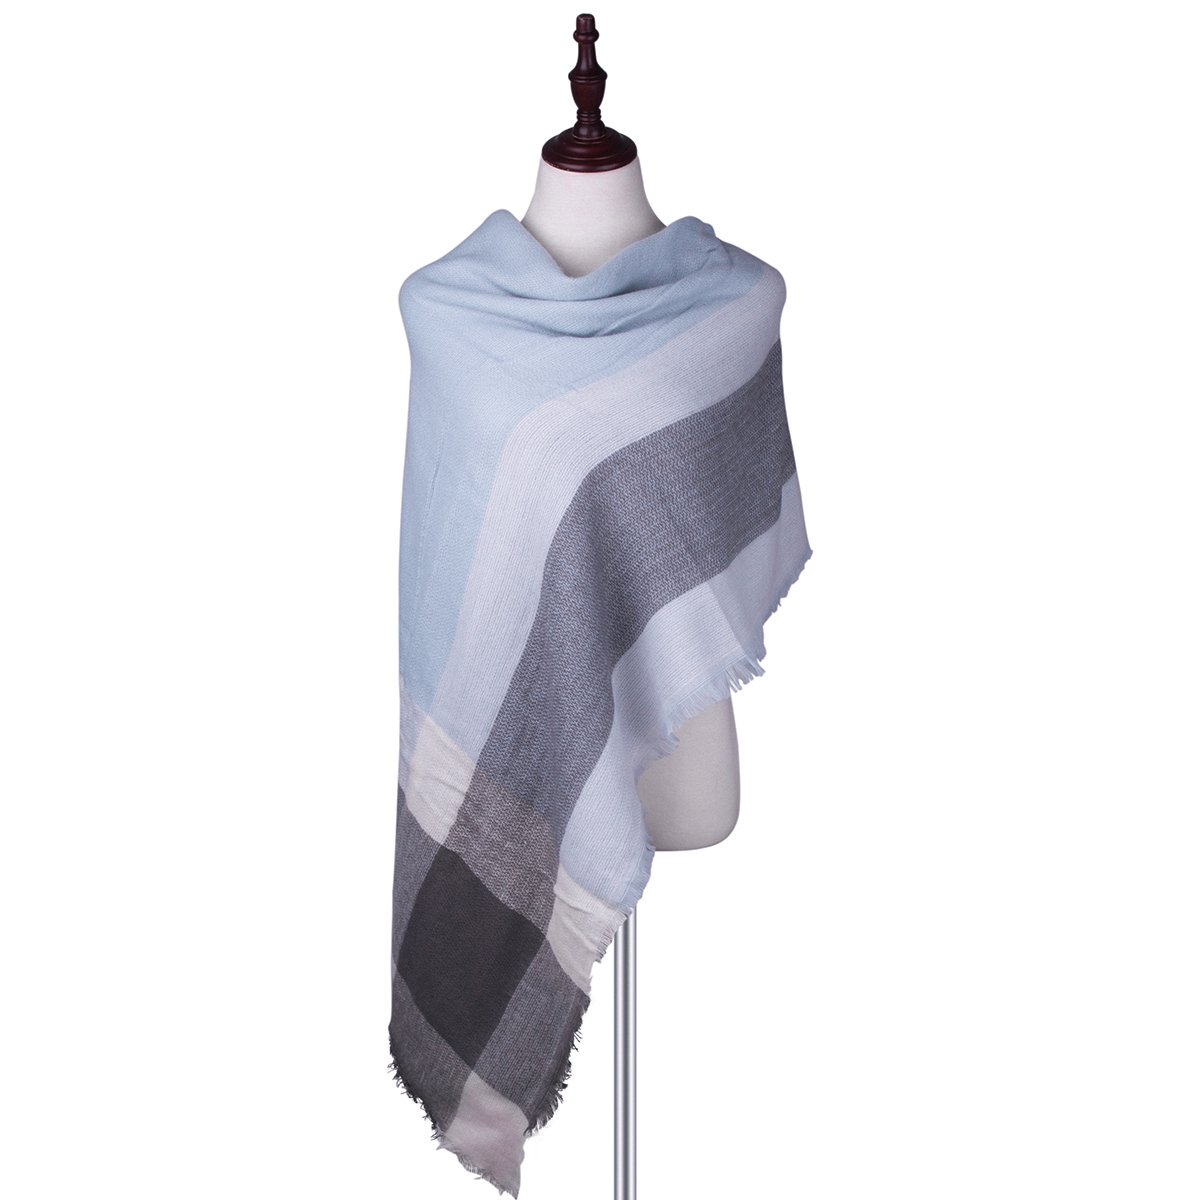 Womens Big Square Scarf Multi-Color Plaid Blanket Shawl Long Tartan Shawl (Light grey)